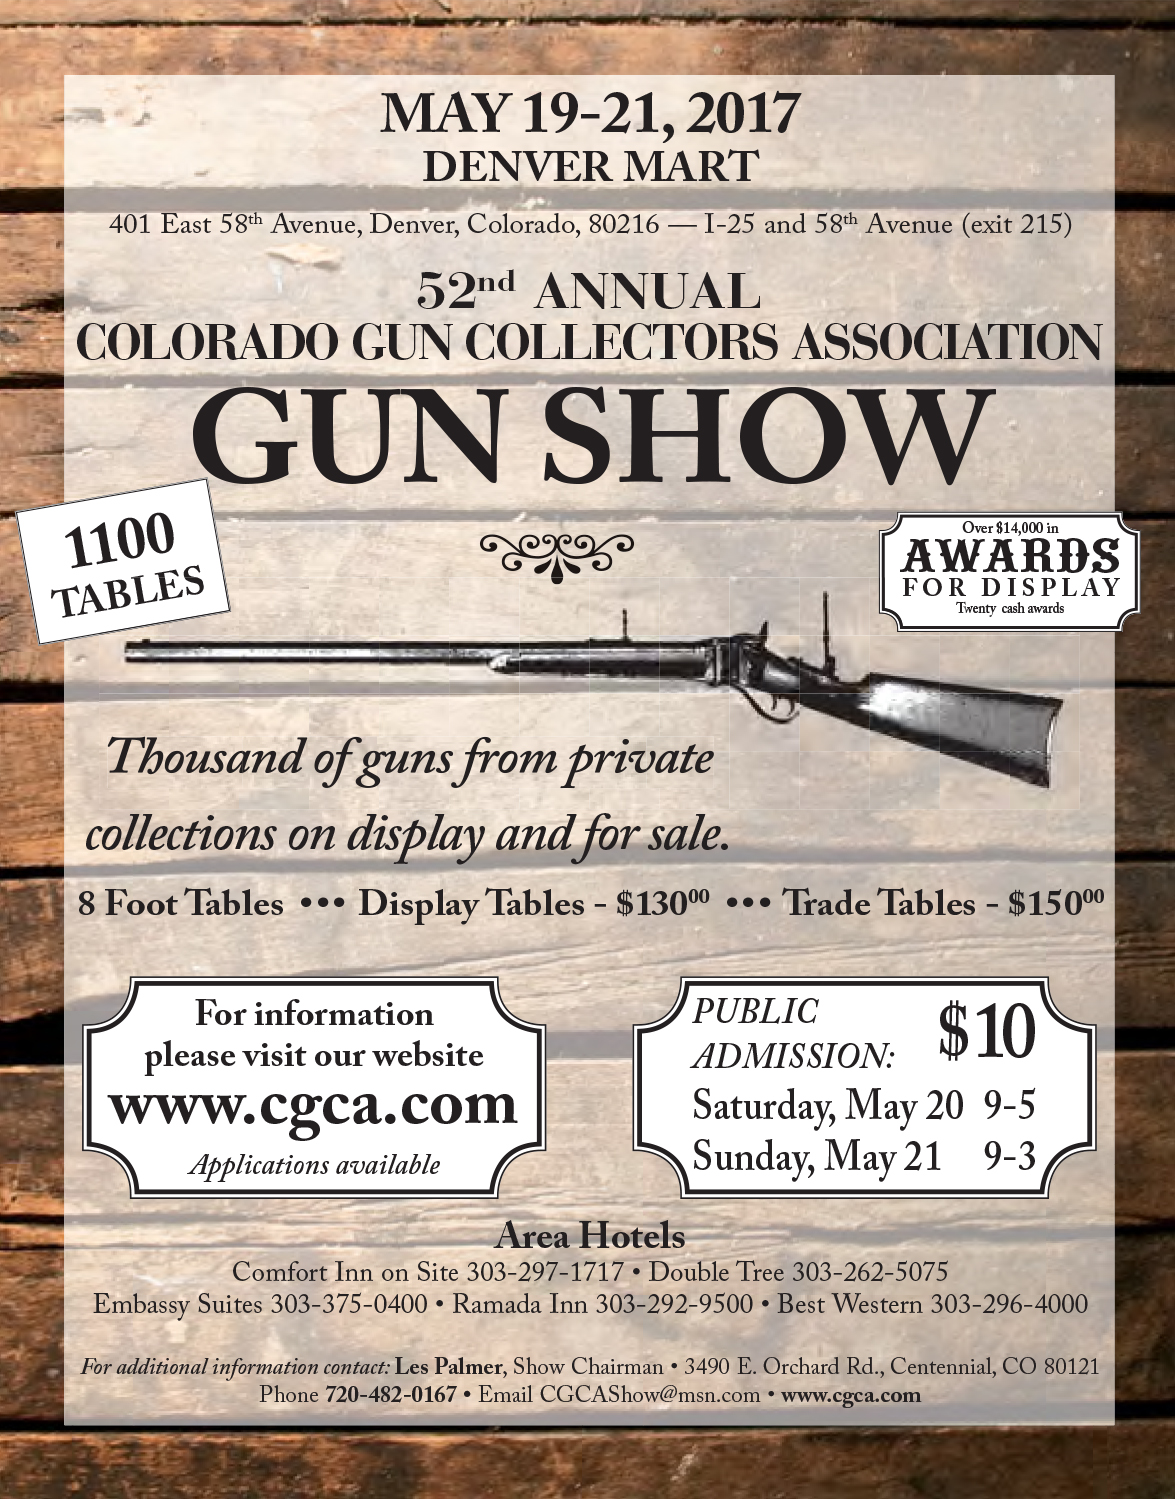 Denver Gun Show May 2017 ad